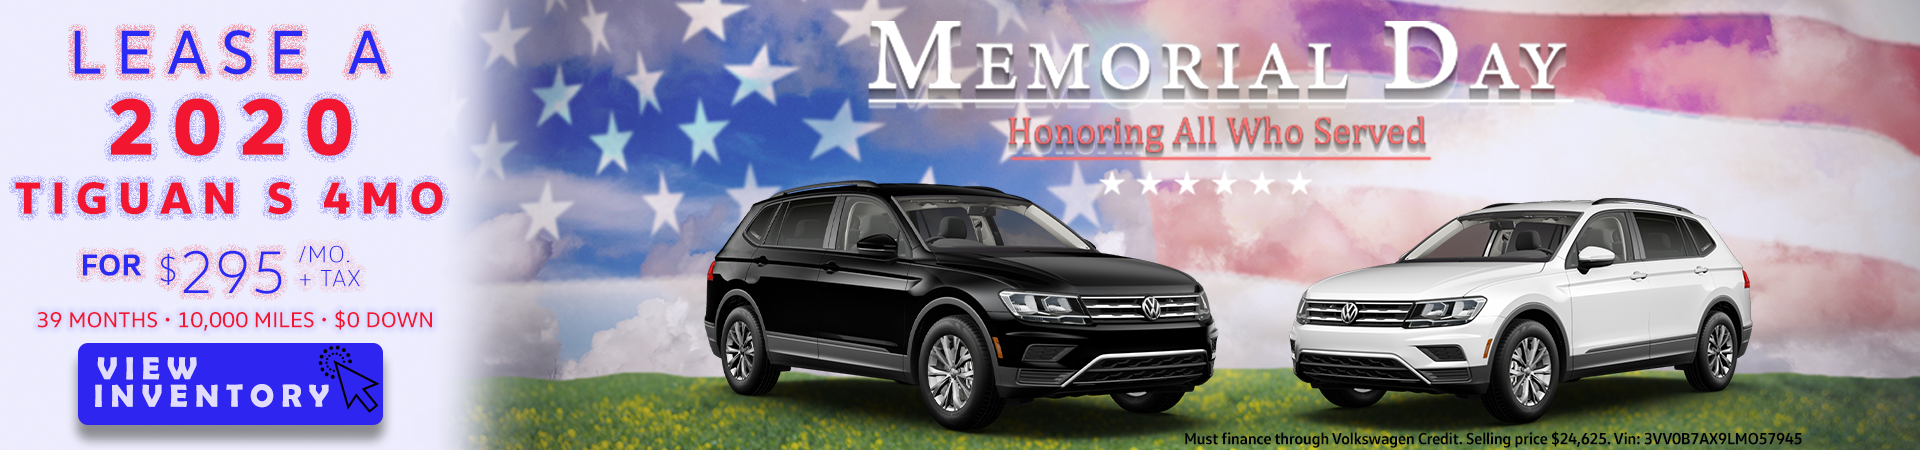 two cars on American flag background